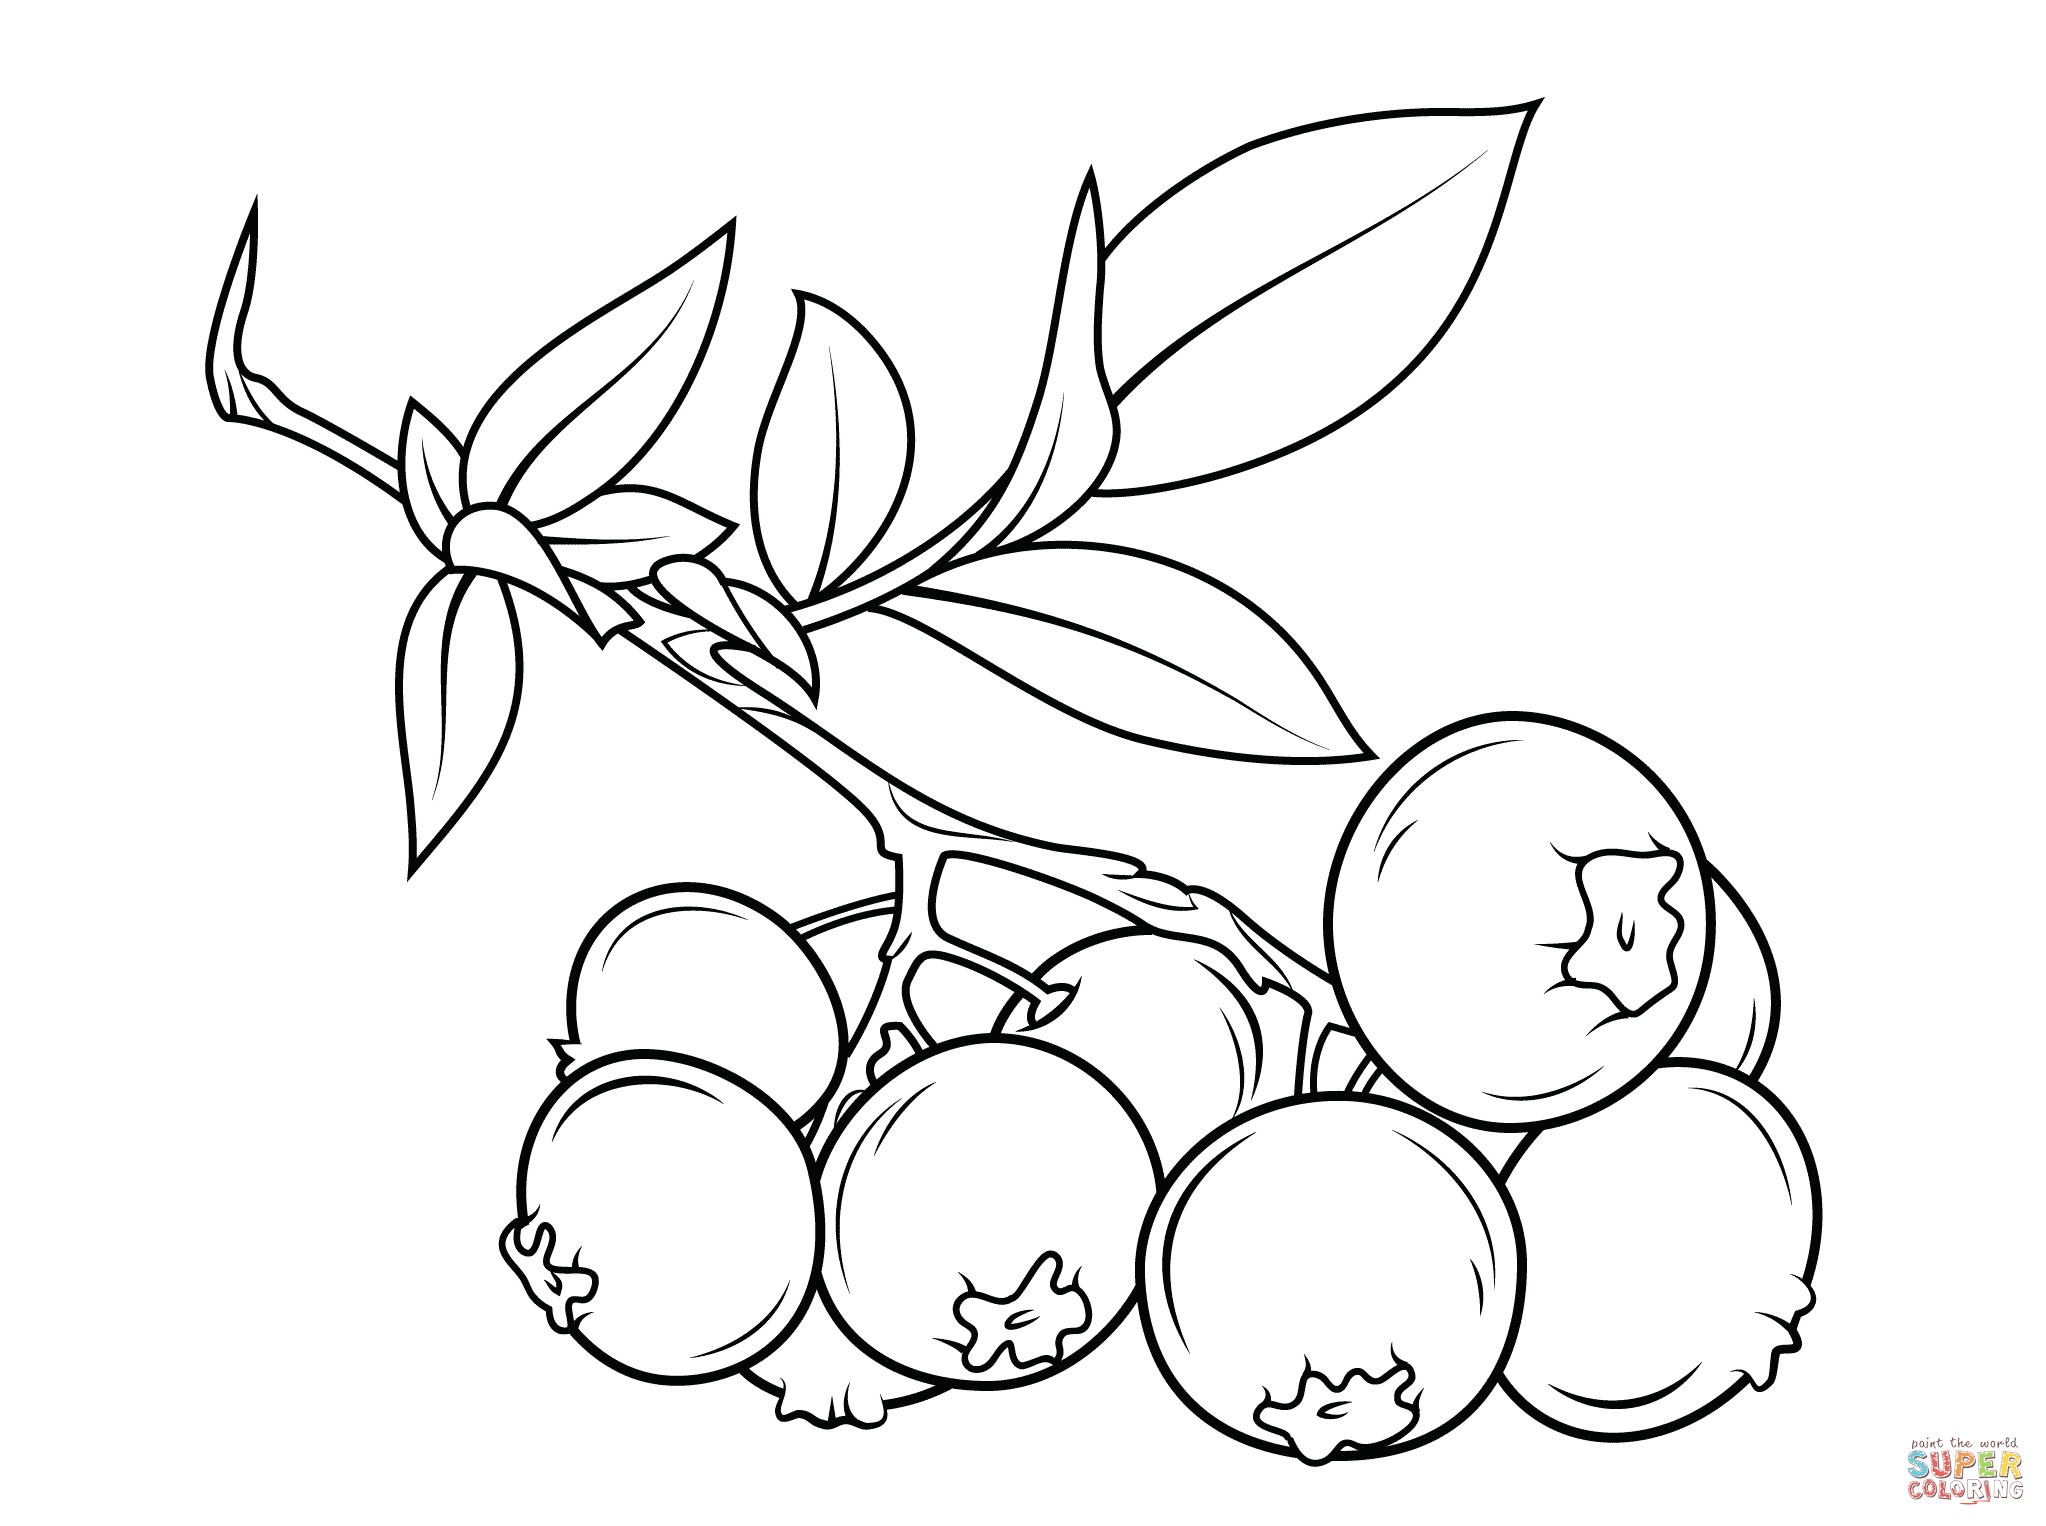 blueberry coloring page blueberries coloring pages to download and print for free blueberry coloring page